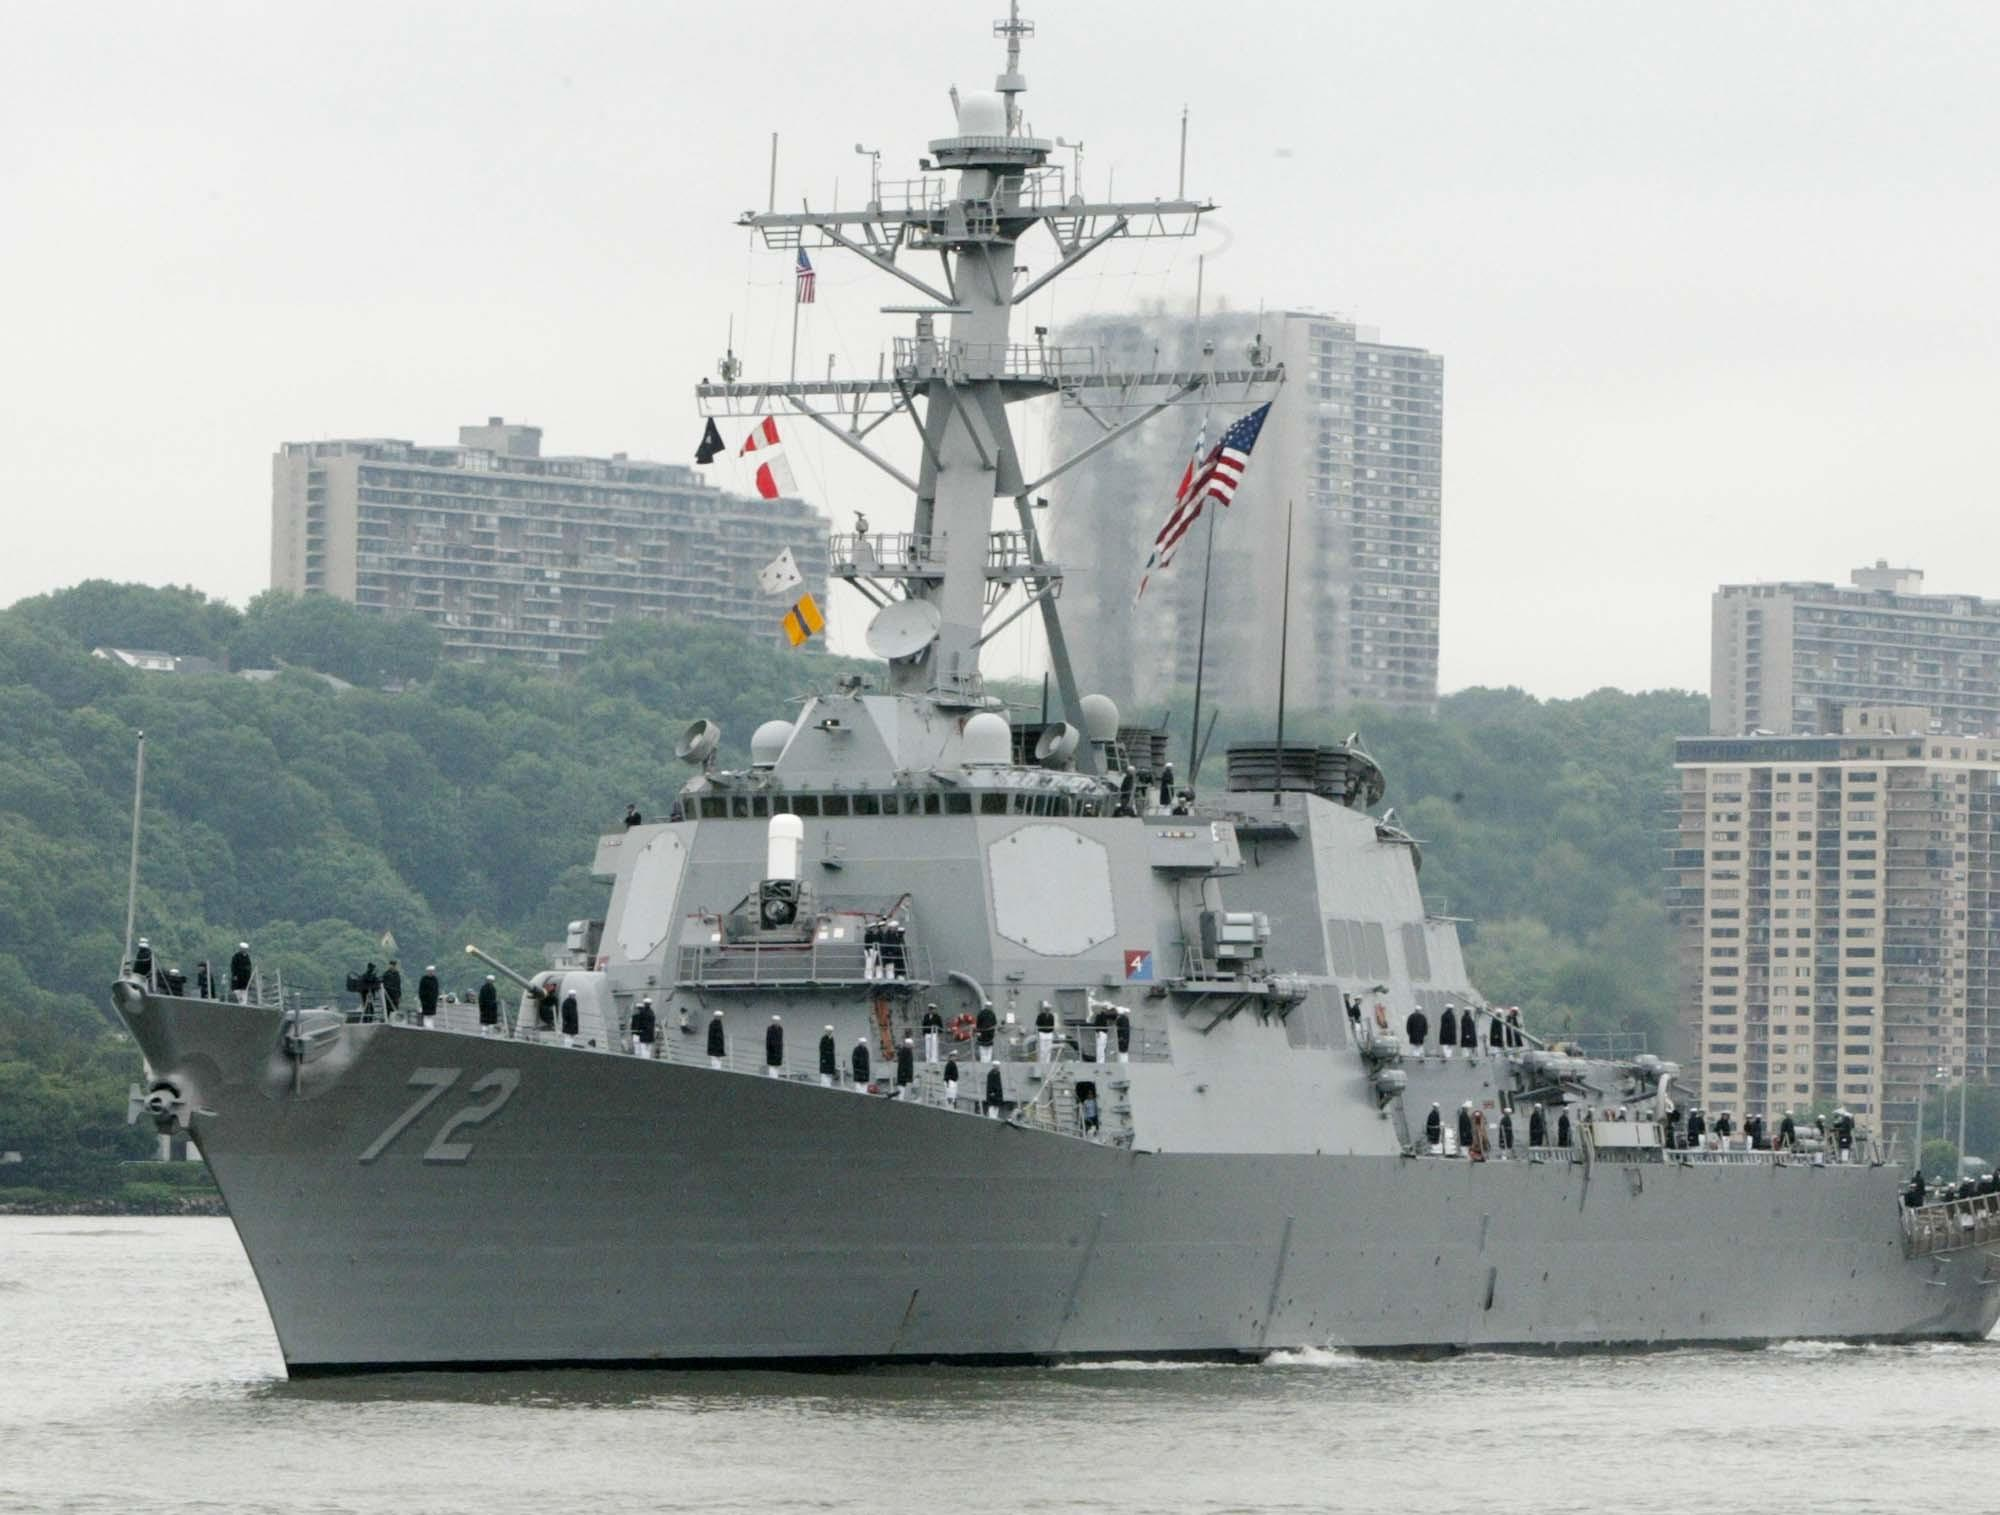 In this May 26, 2004 file photo, the USS Mahan, a guided-missile destroyer, moves up the Hudson River in New York during Fleet Week. A sailor was fatally shot aboard the USS Mahan at Naval Station Norfolk late Monday, March 24, 2014, and security forces killed a male civilian suspect, base spokeswoman Terri Davis said.